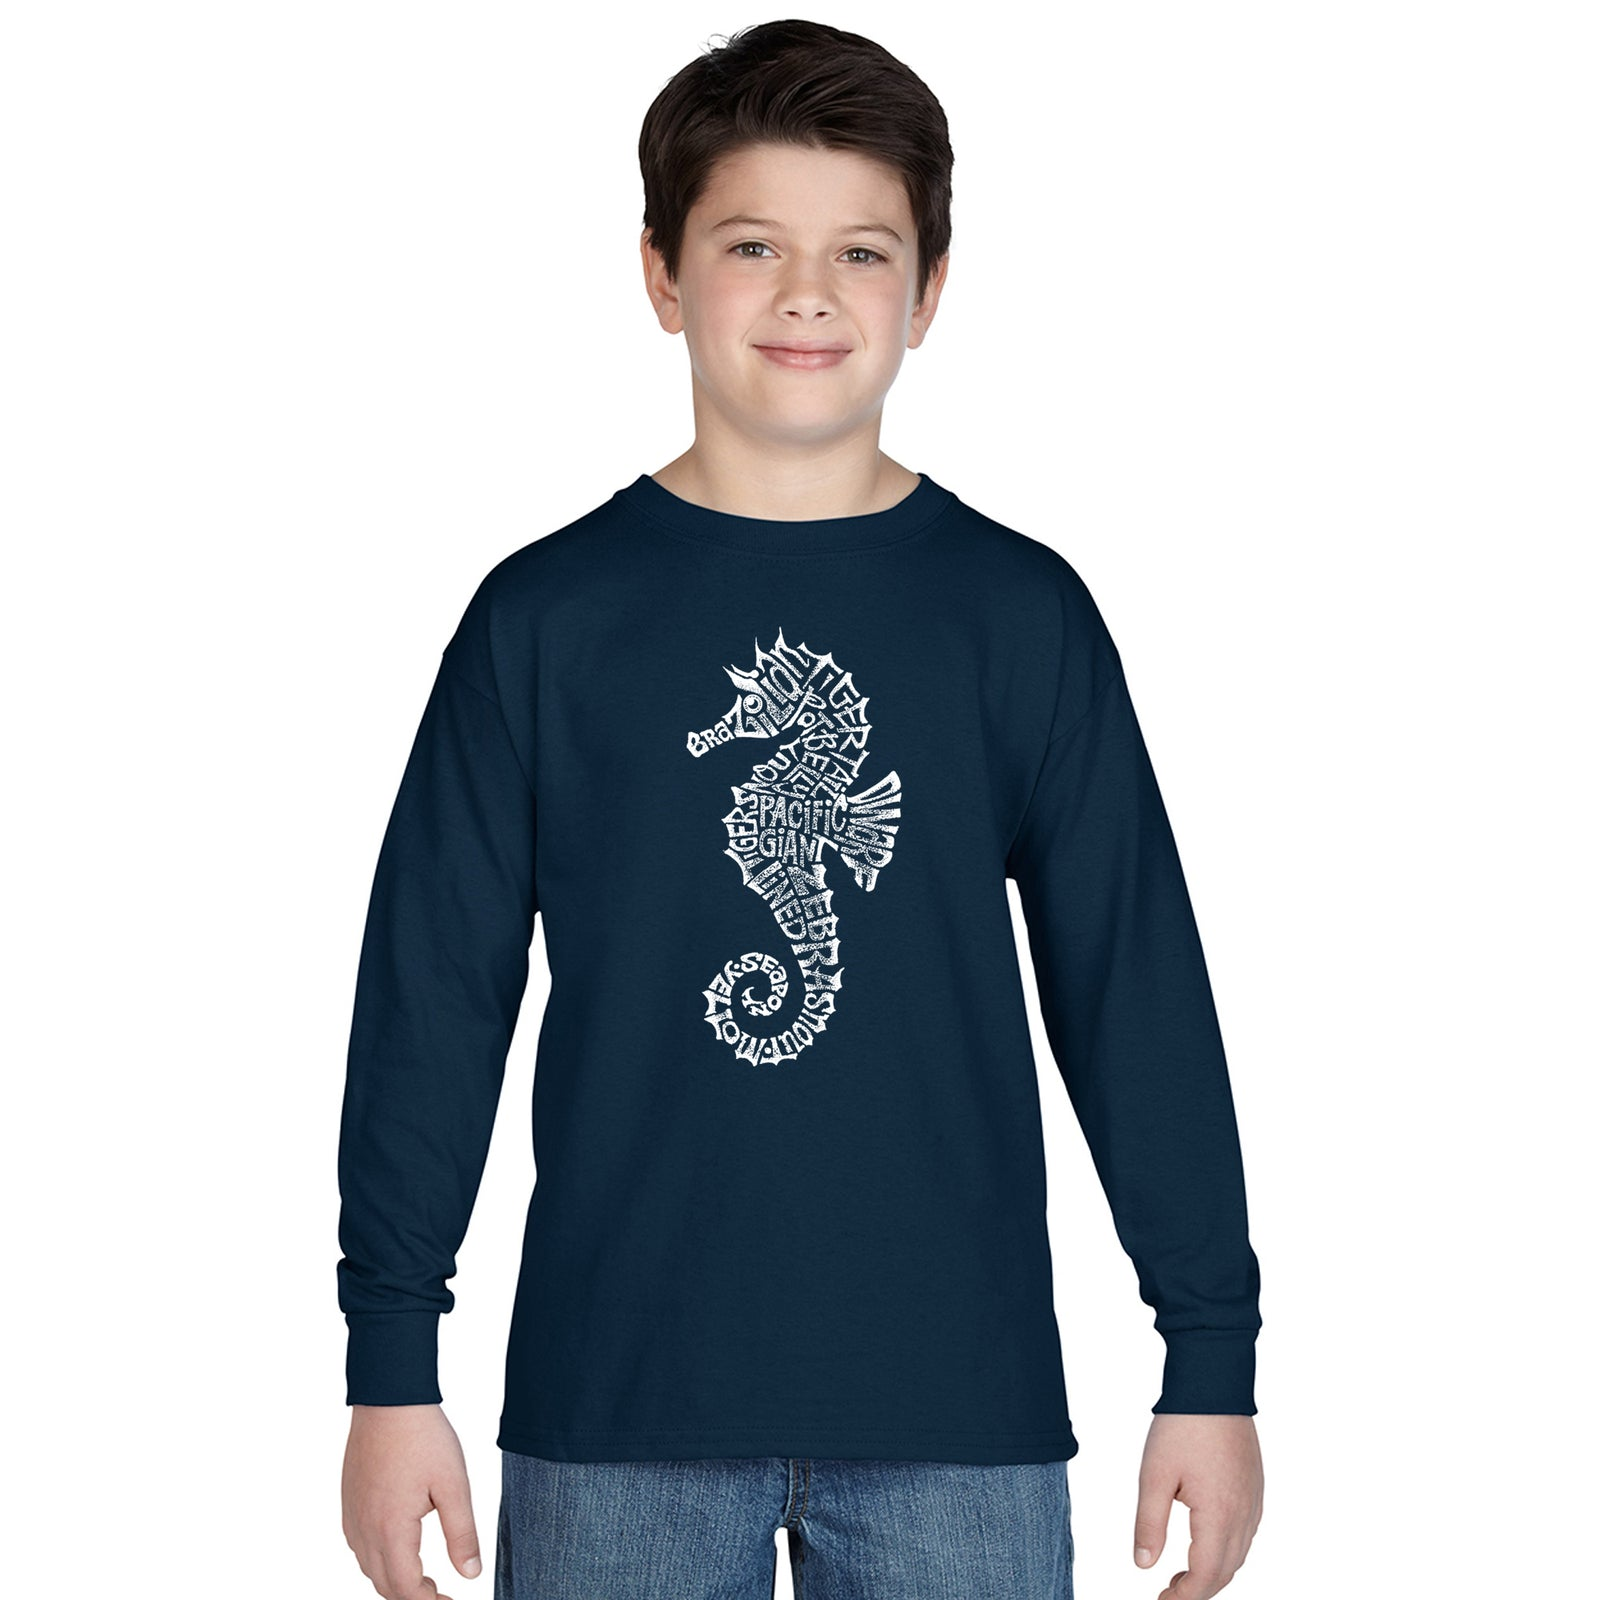 Boy's Word Art Long Sleeve - Types of Seahorse